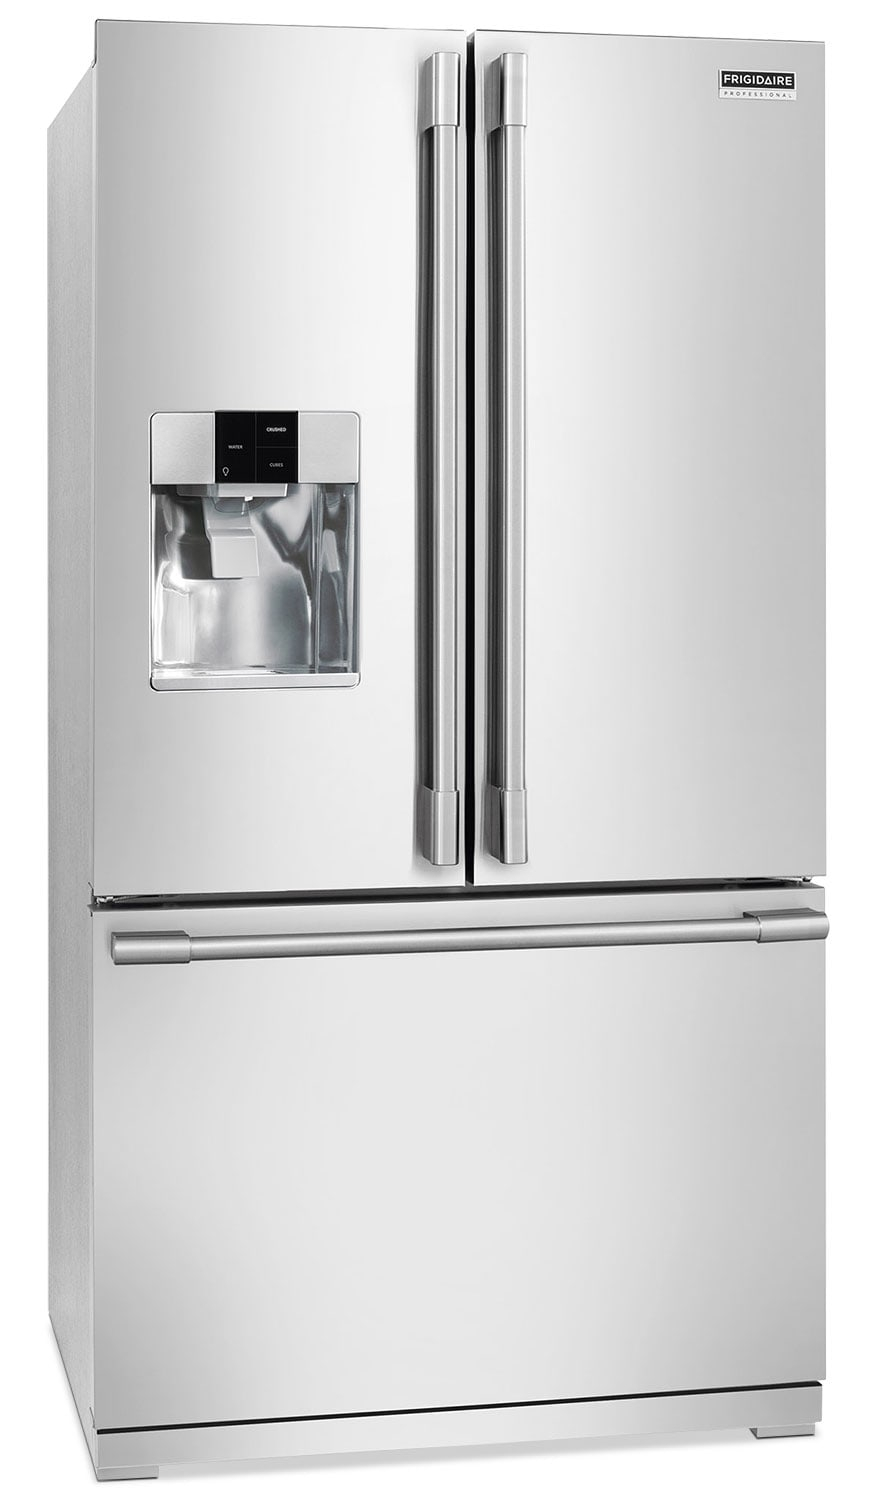 Refrigerators and Freezers - Frigidaire Professional Stainless Steel French Door Refrigerator (27.8 Cu. Ft.) - FPBS2777RF